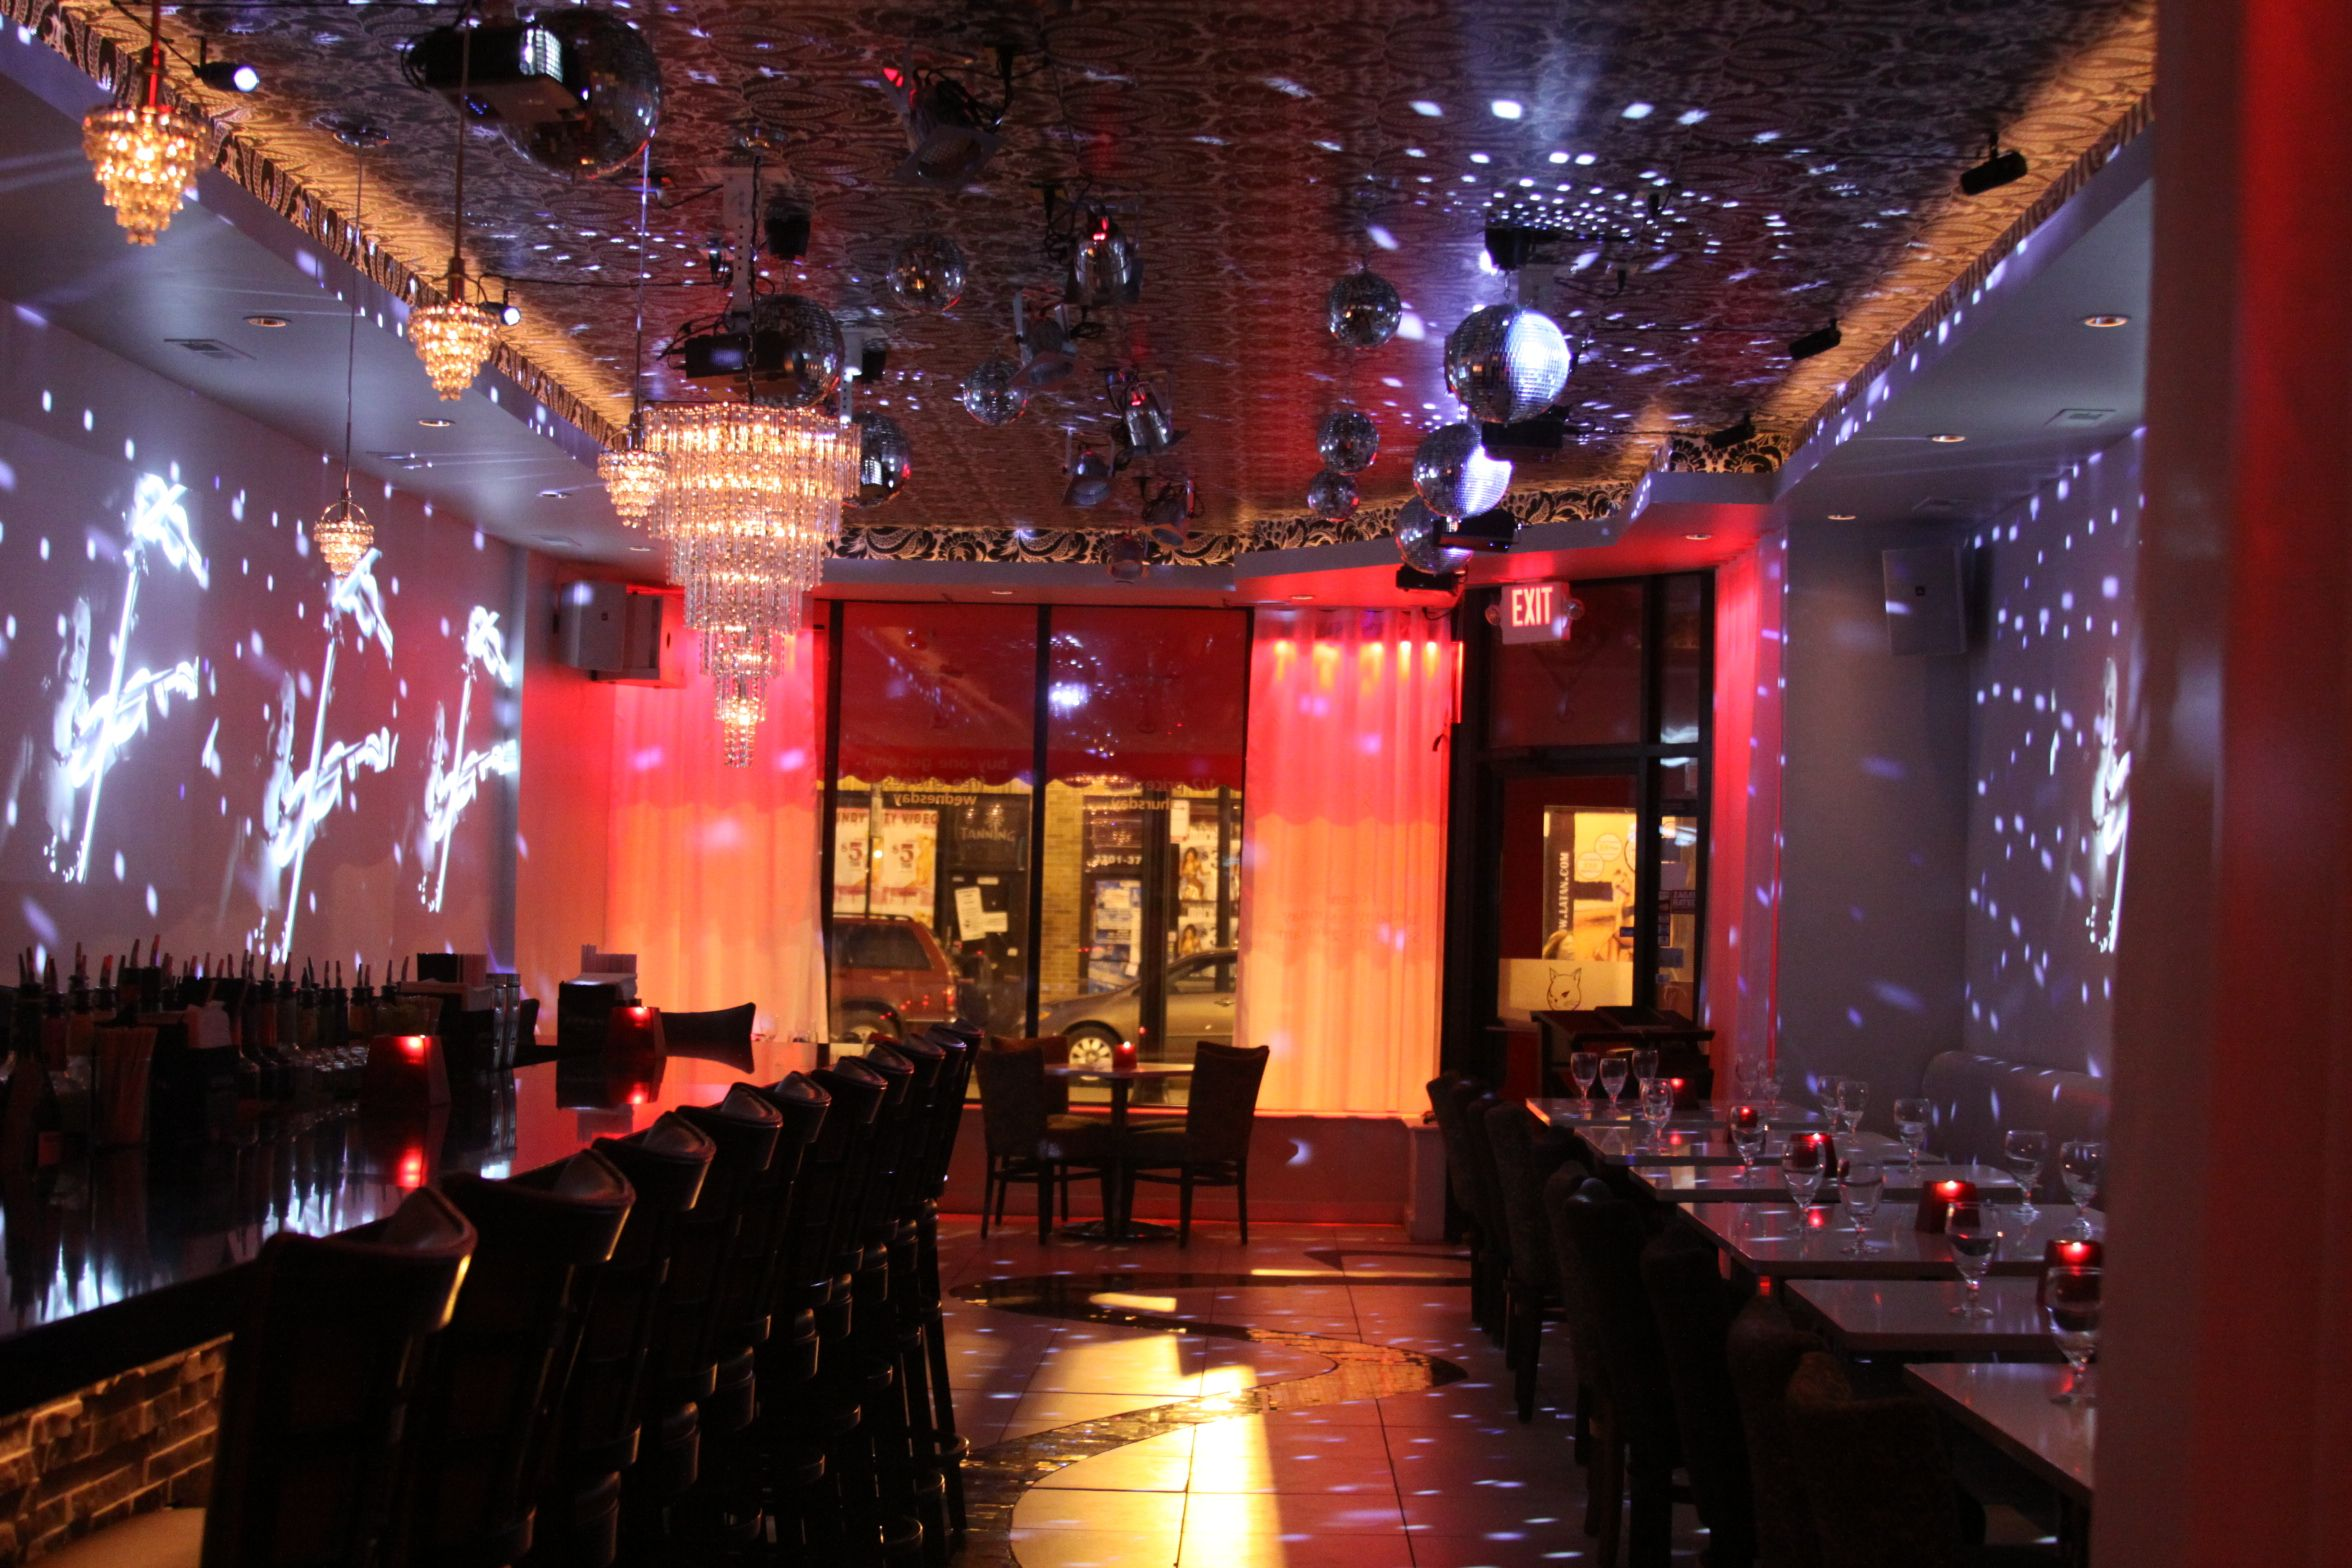 Celebrate Marilyn Monroes Birthday at Kit Kat Lounge and